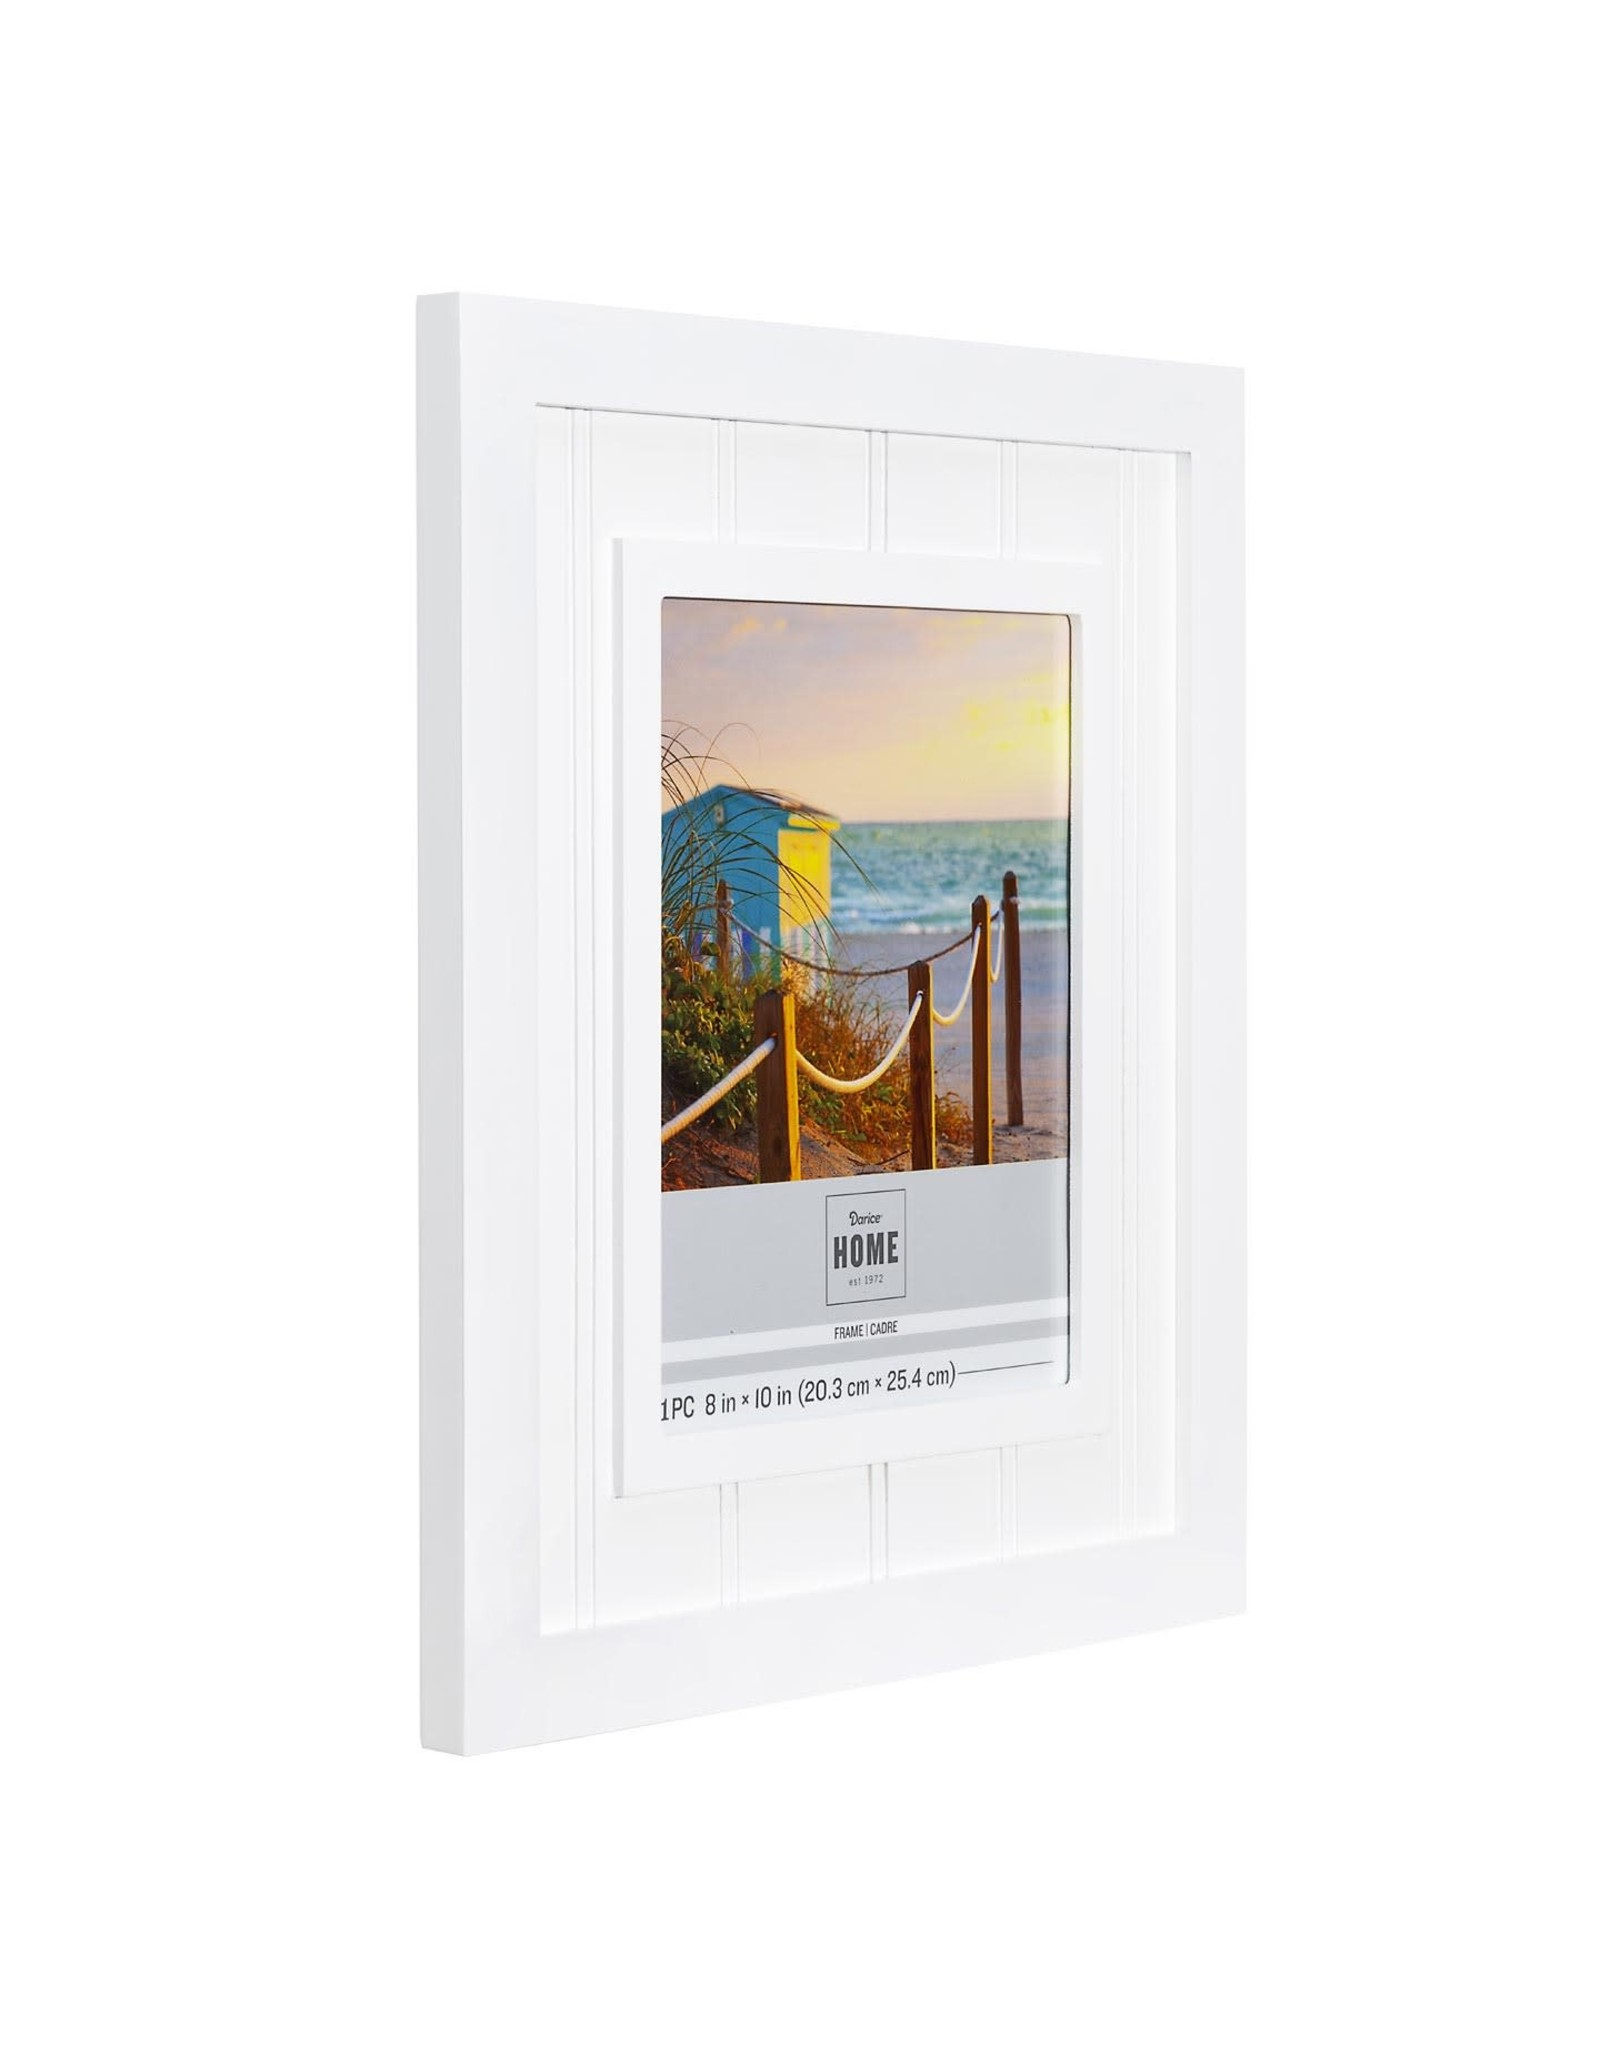 Darice Beadboard Picture Frame For 8x10 Photo